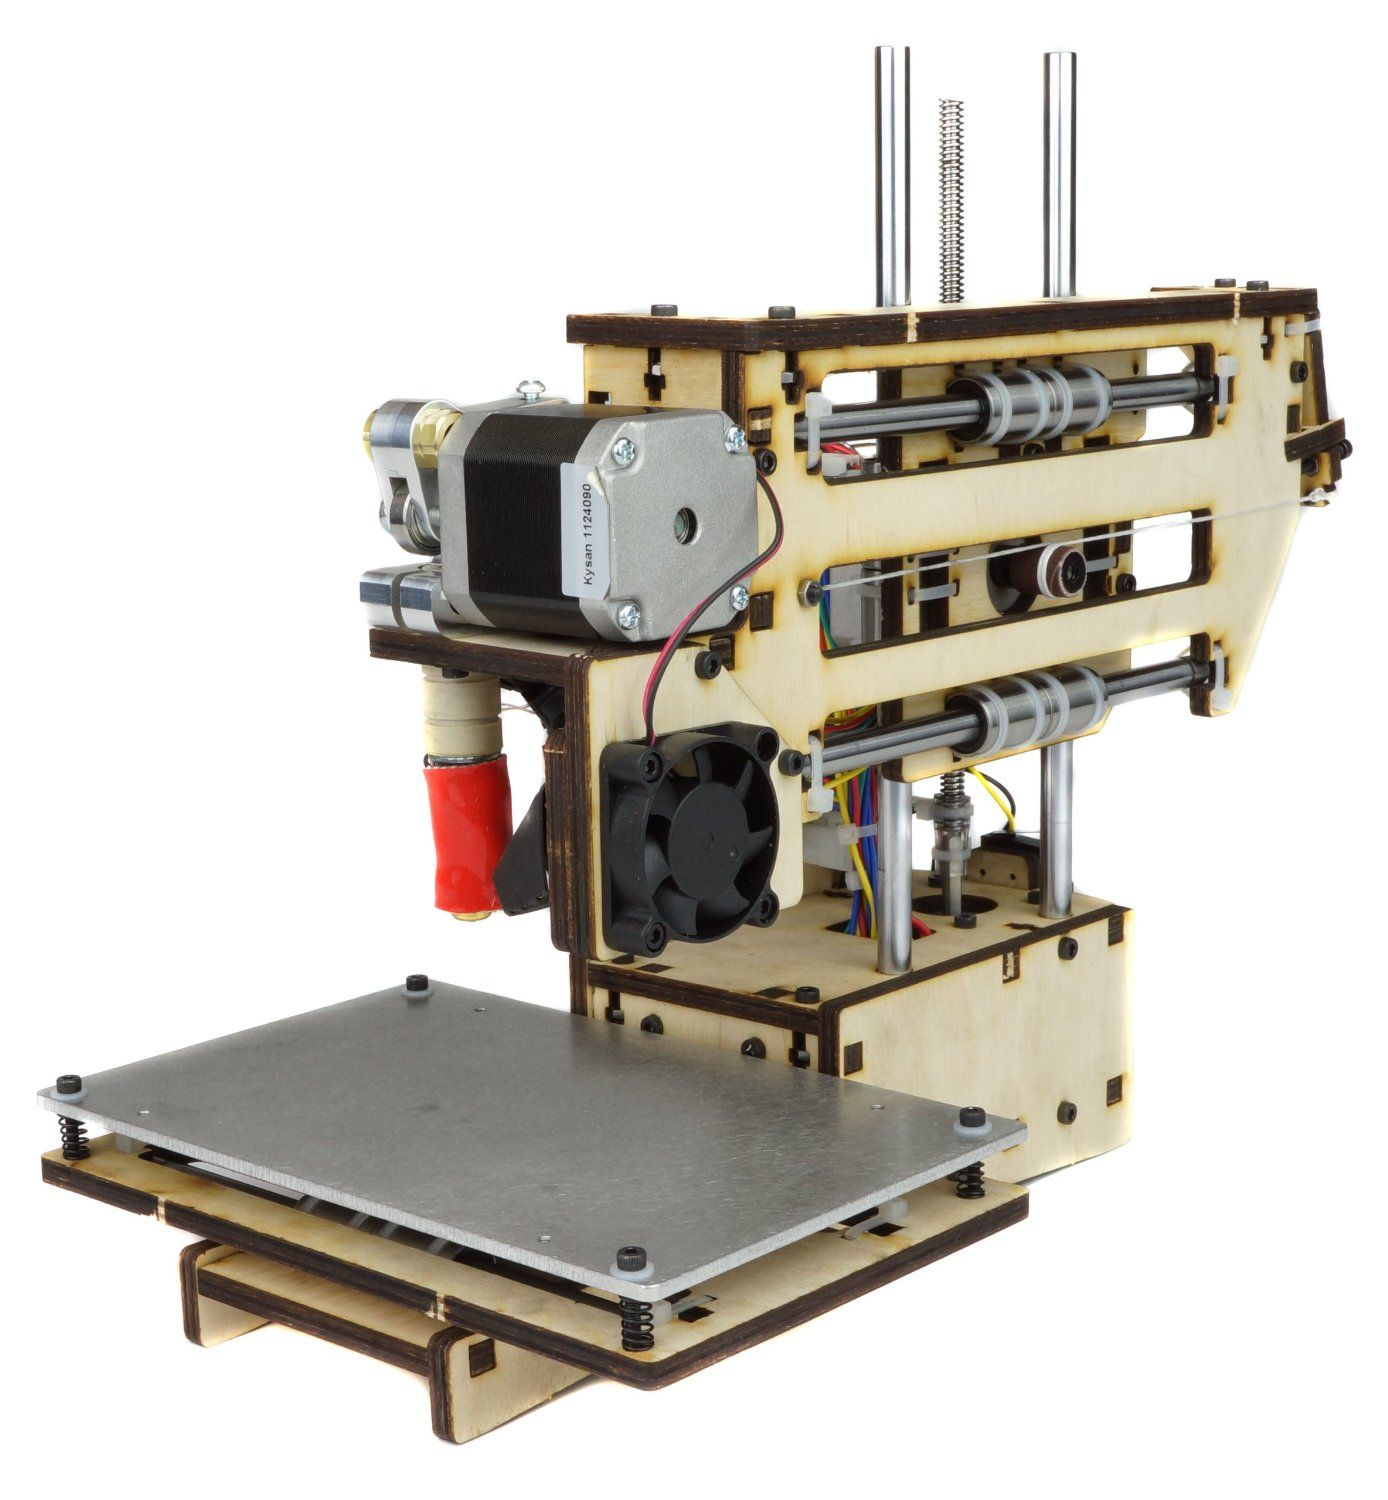 Affordable and Cheap 3D Printers To Buy 3d printer kit